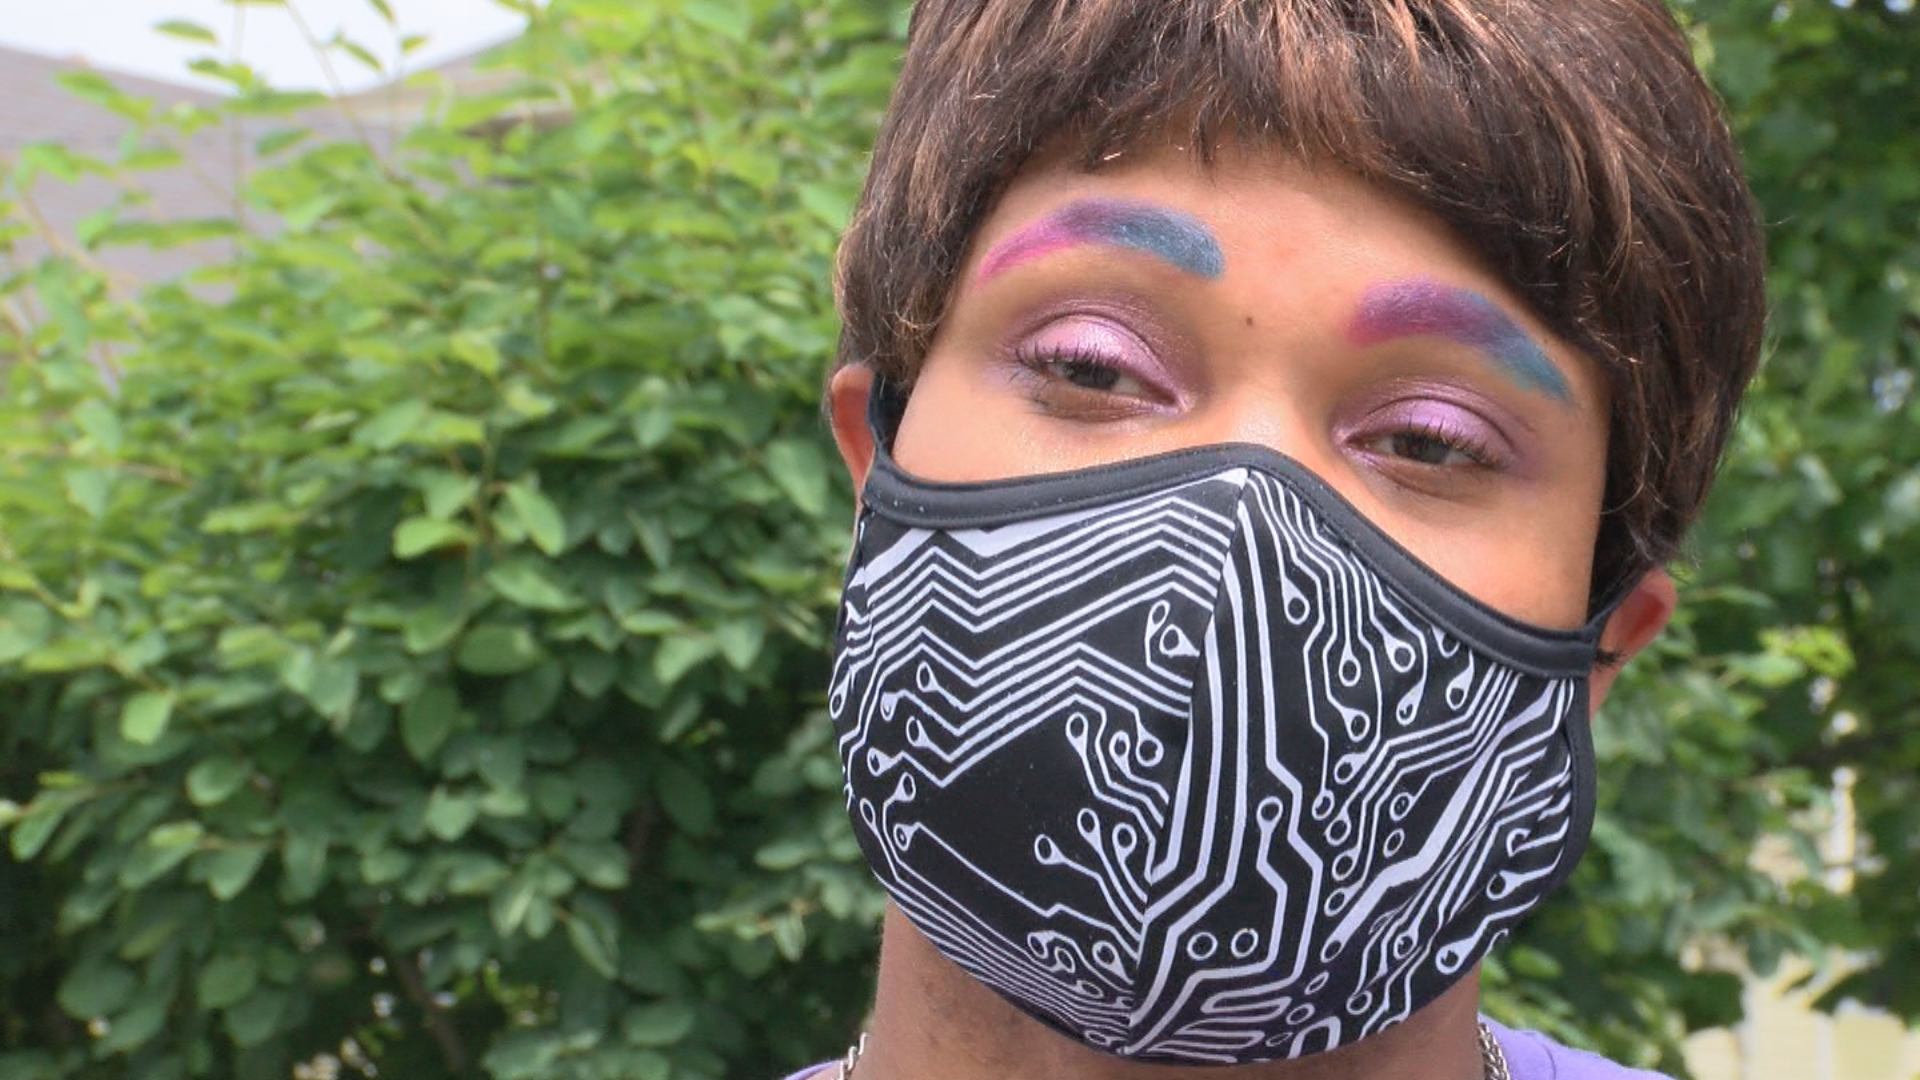 Indy woman shares story to inspire trans, nonbinary community - WISH-TV